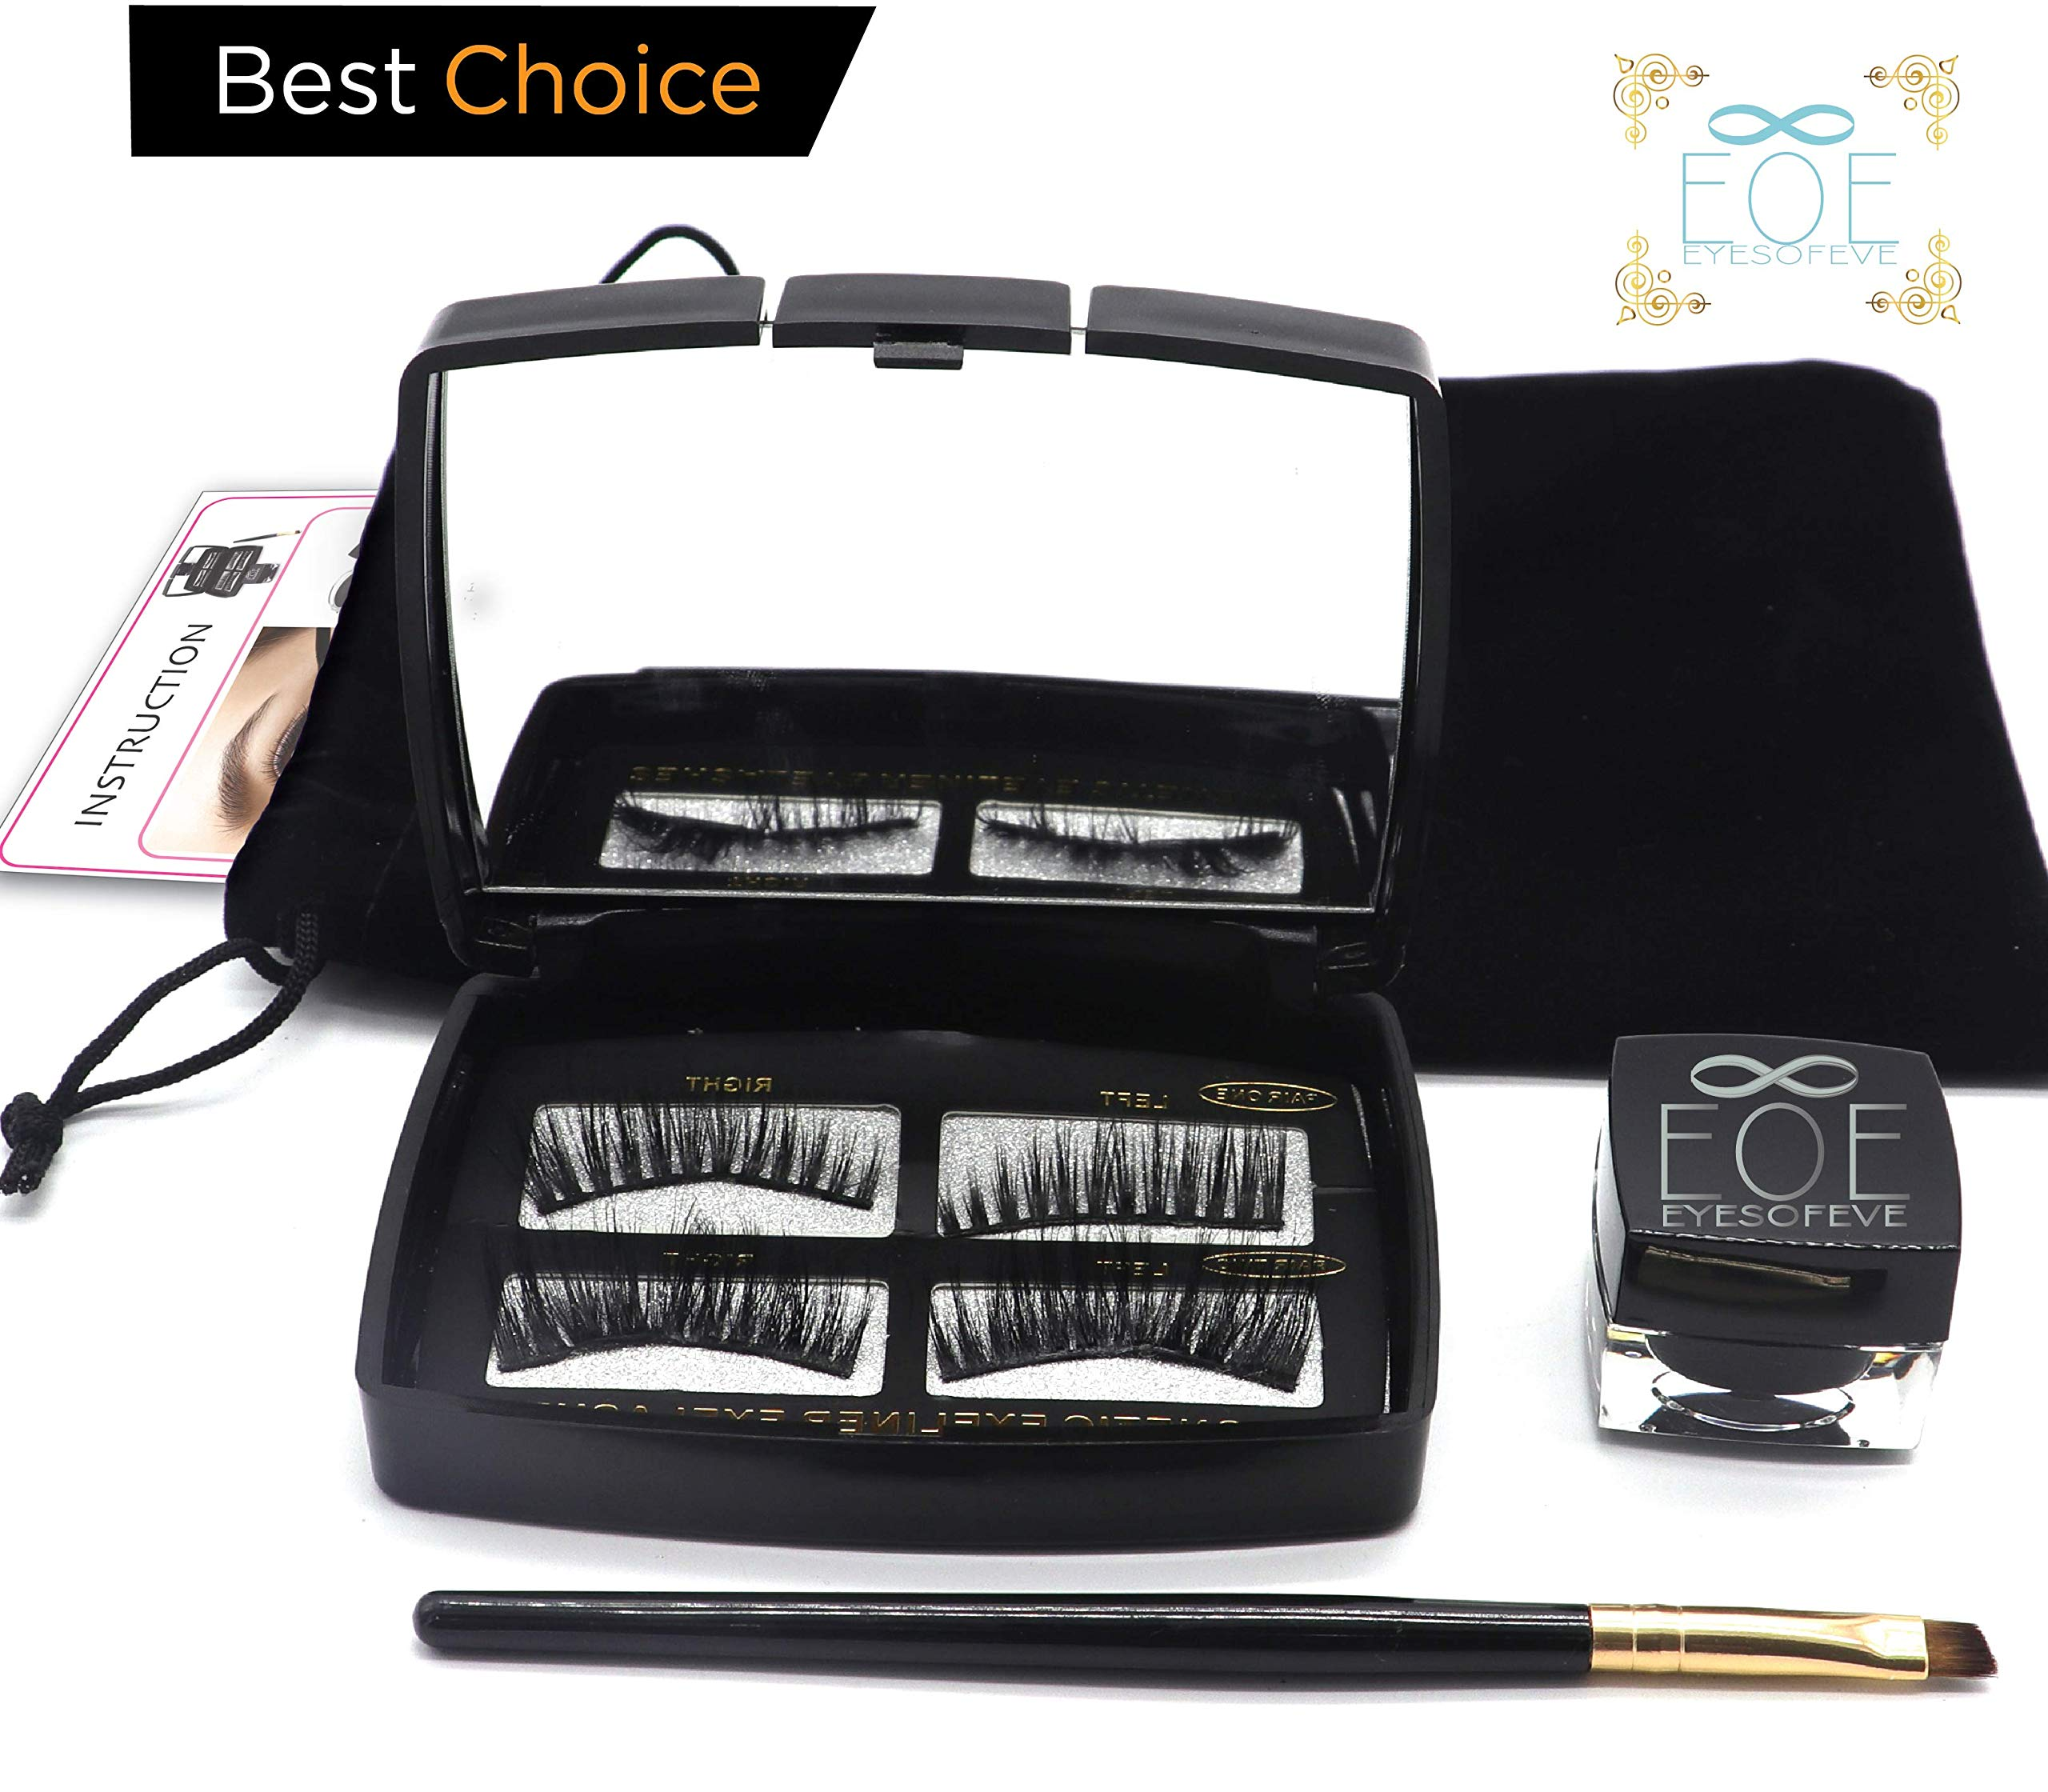 Magnetic Lashes Magnetic eyeliner Ge [By EOE] 2019 LashLiner kit with Brush and Mirror. Lashes are natural looking reusable eyelashes Easy application. no glue